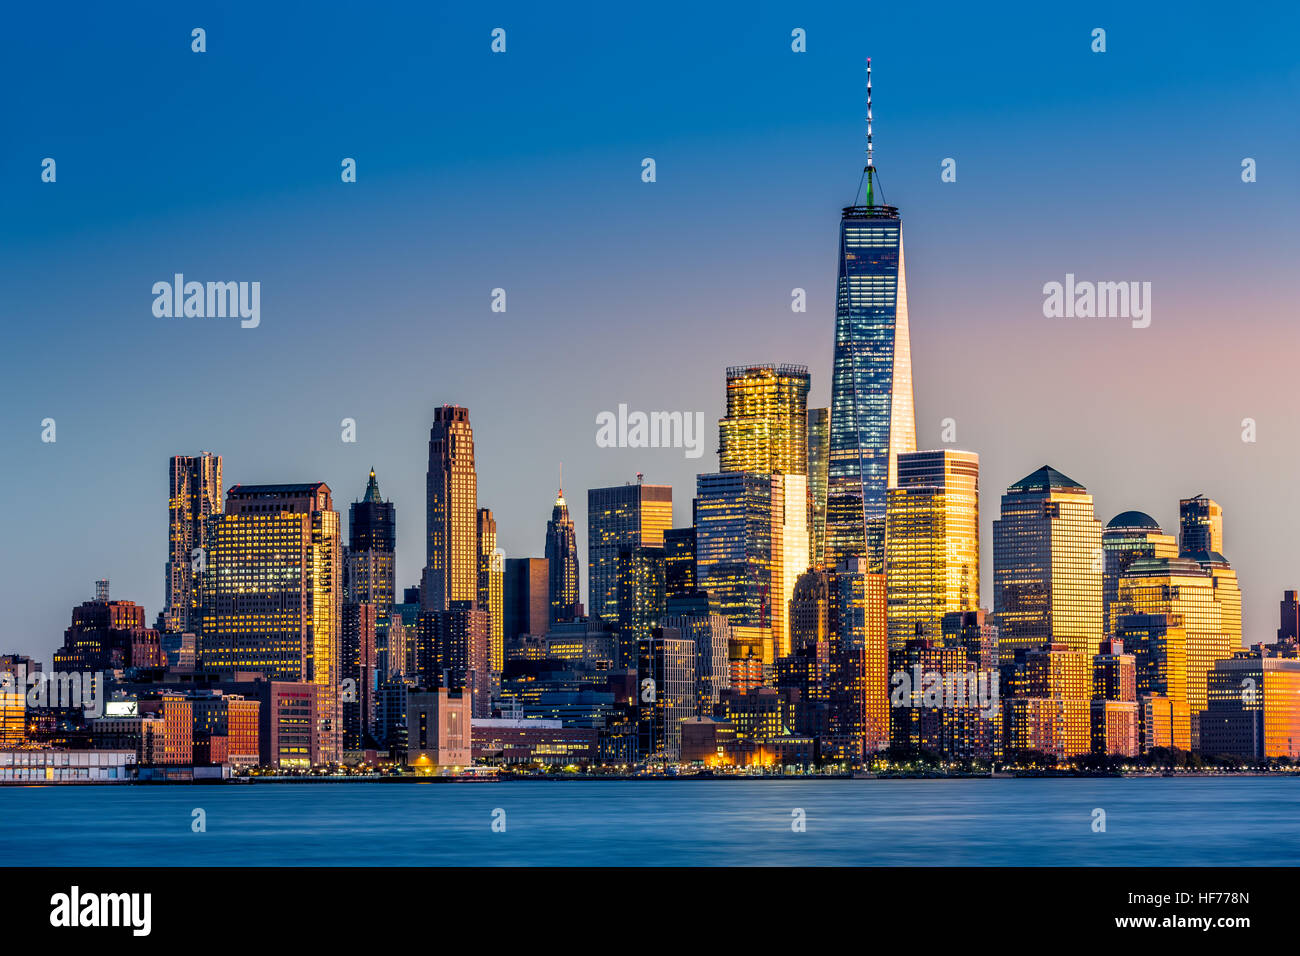 Lower Manhattan at sunset viewed from Hoboken, New Jersey - Stock Image